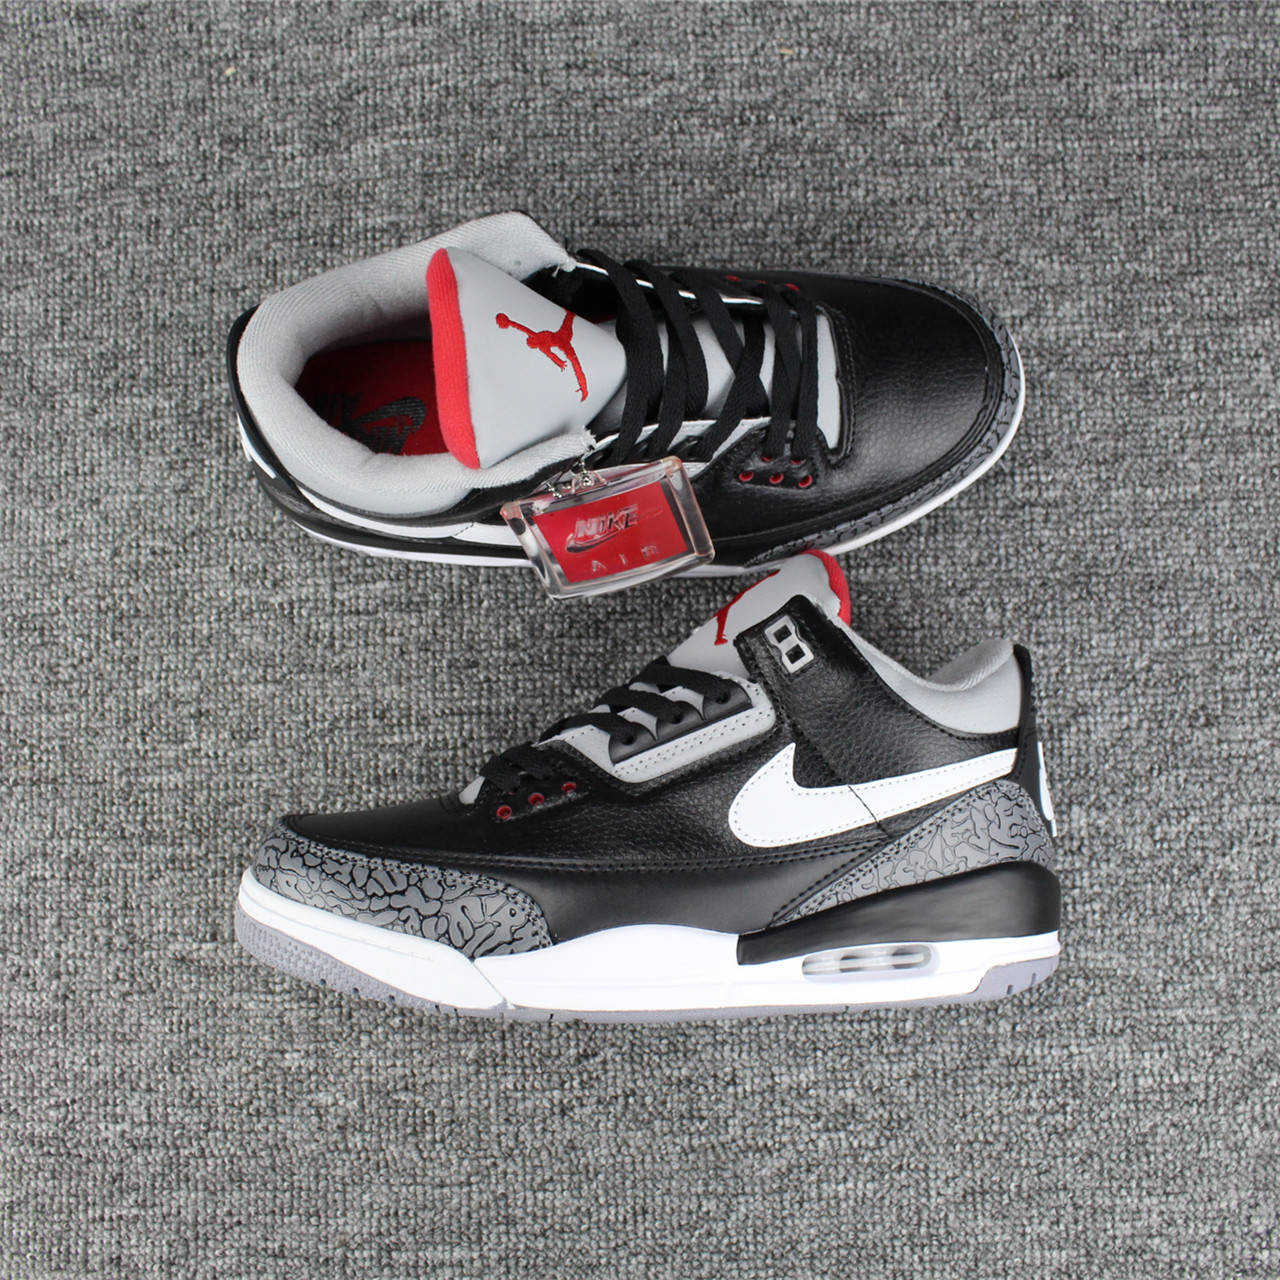 New Jordans 3 Black Cement White Swoosh Shoes For Sale